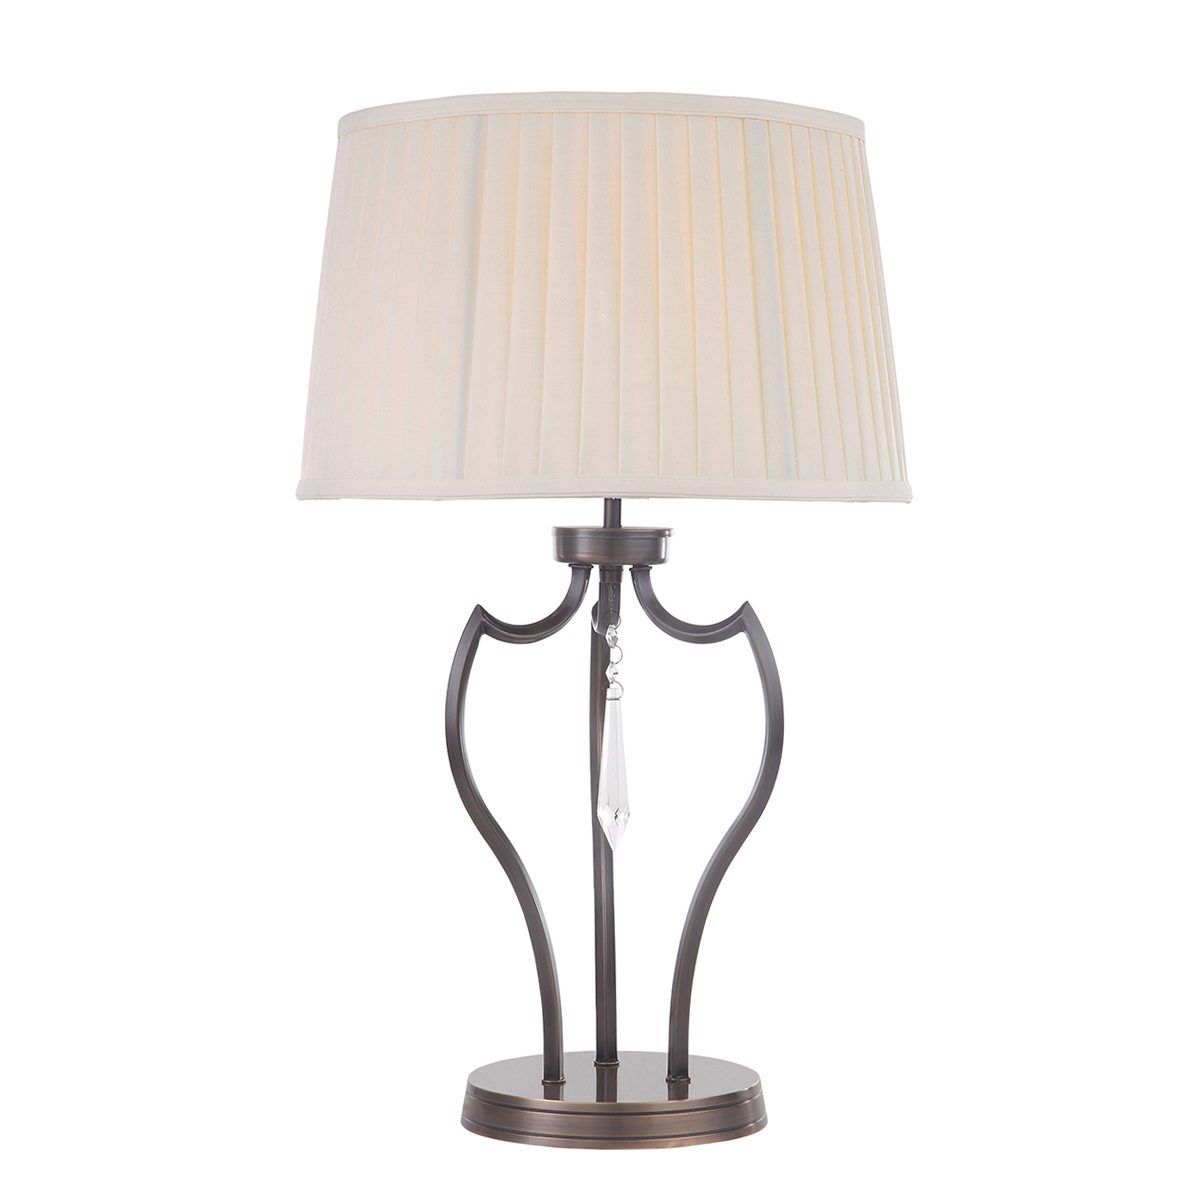 25001 Table Lamp In Dark Bronze With Cut Glass Droplet Distinctive Lighting Uk